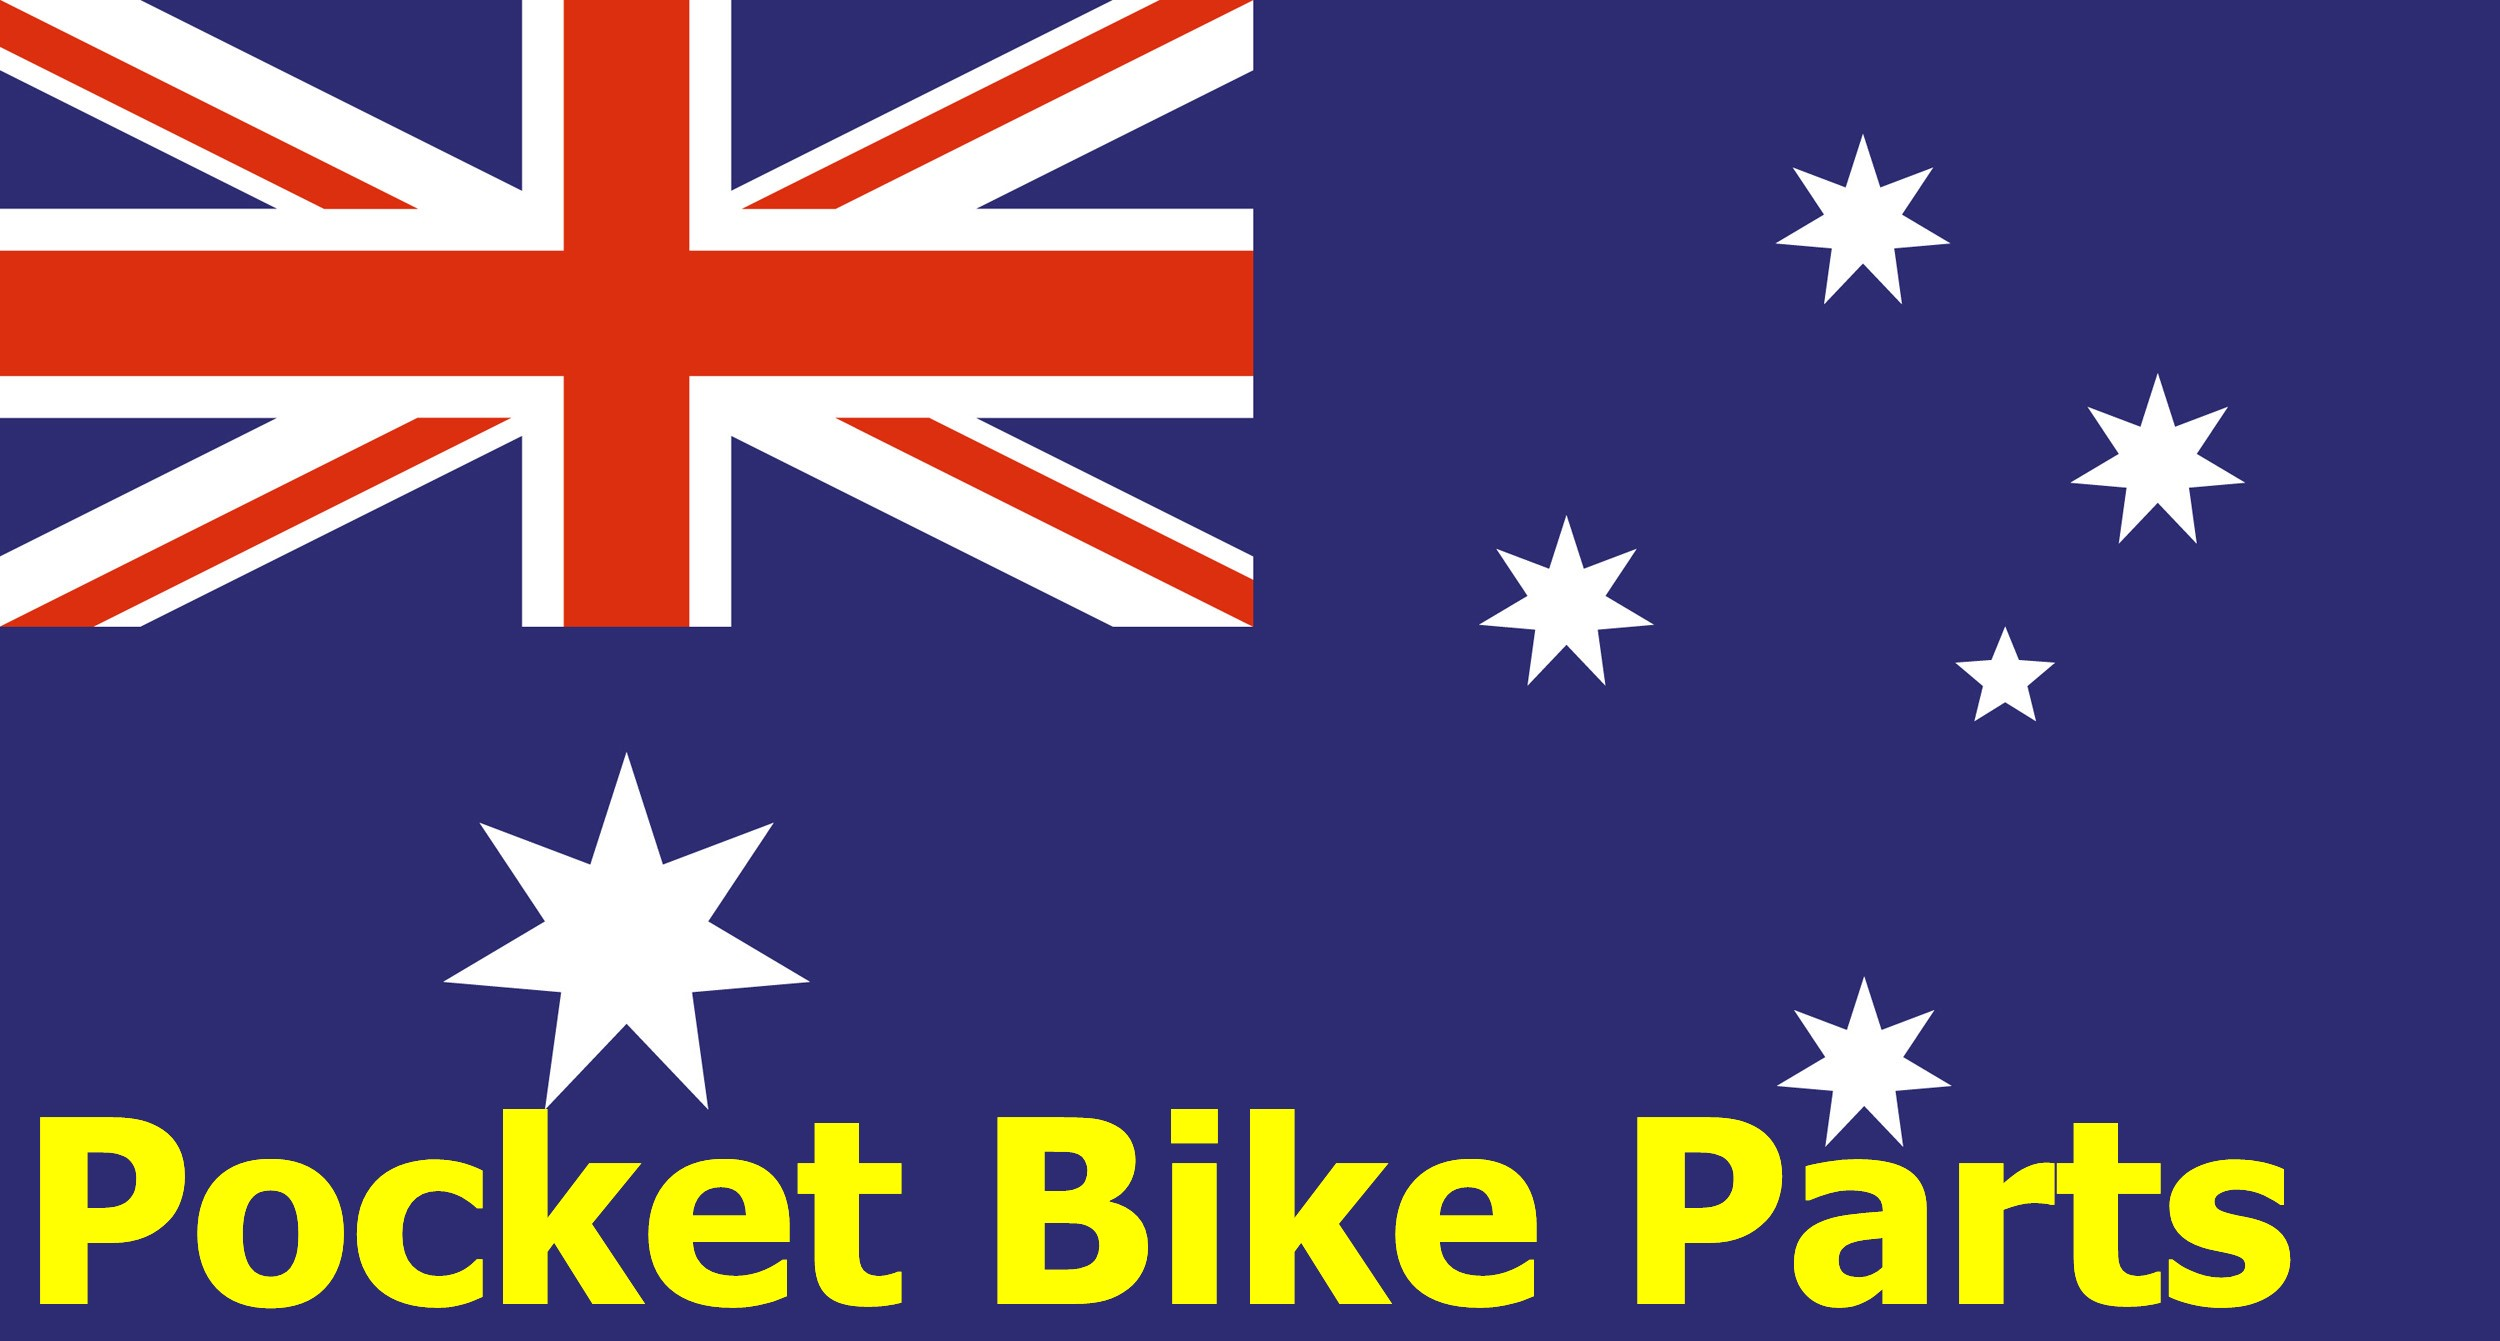 Pocket Bike Parts Coupons